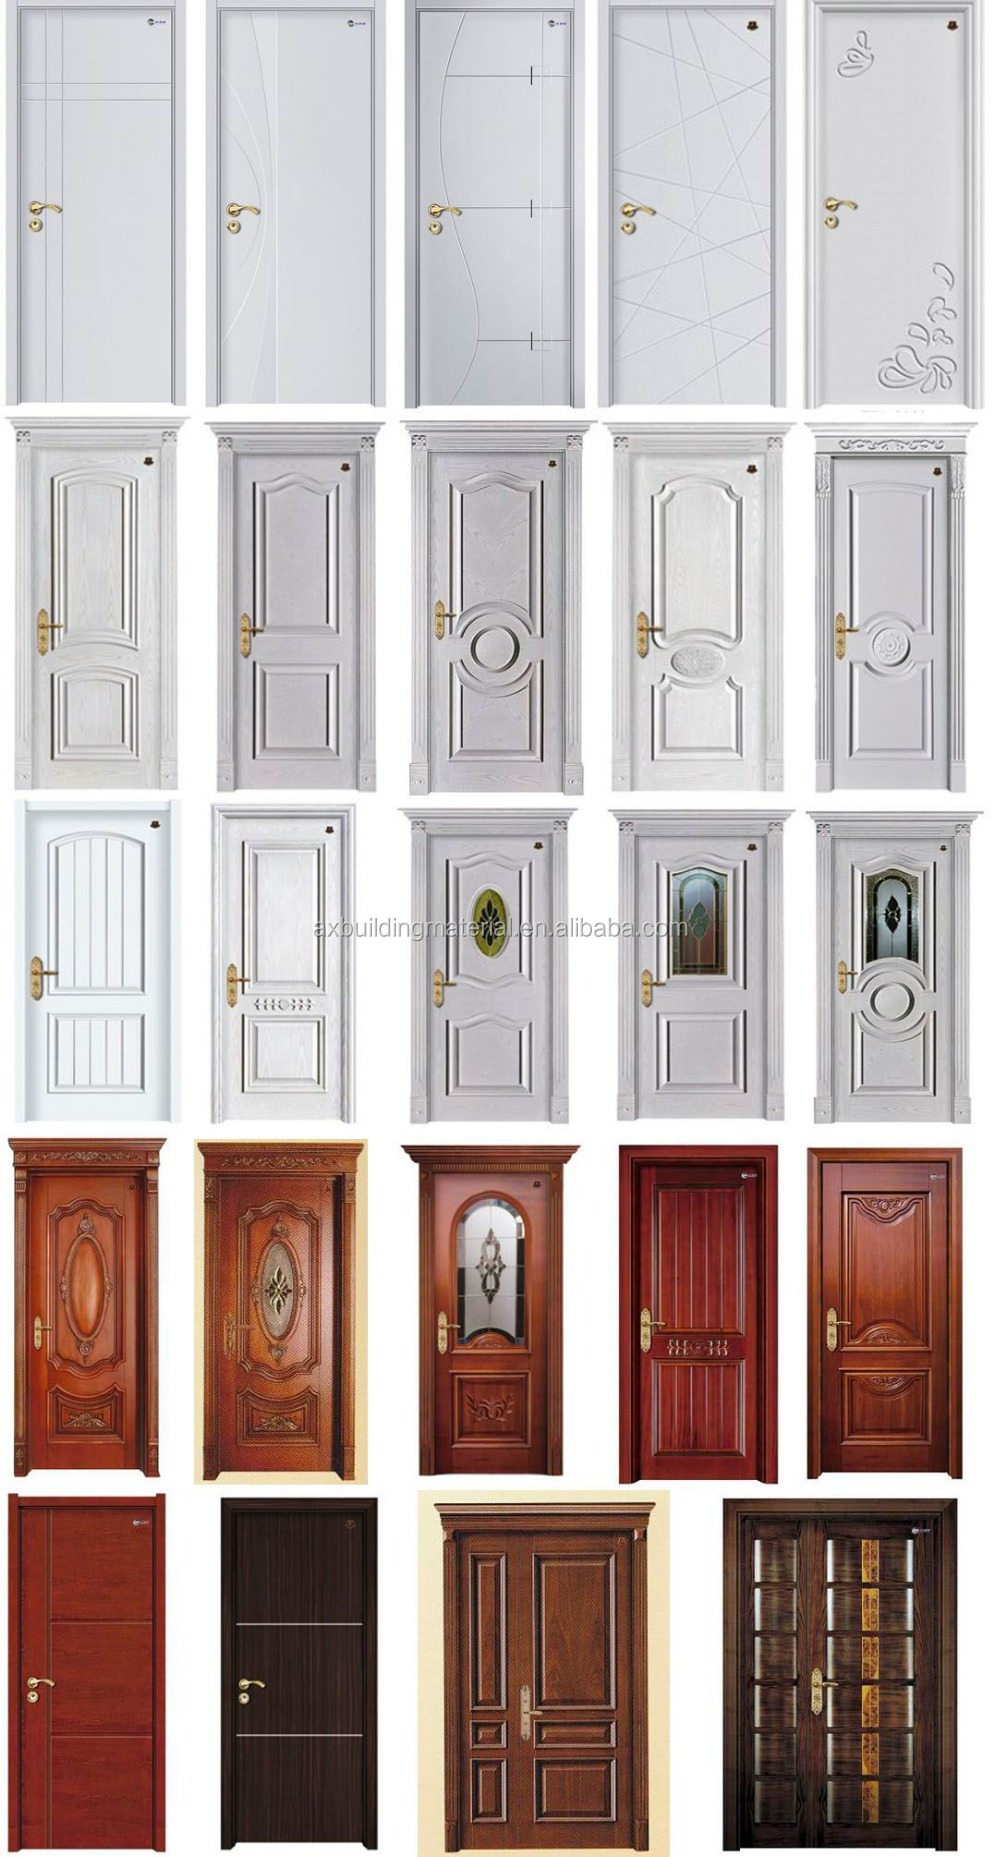 Uniqe Design Solid Wood Door